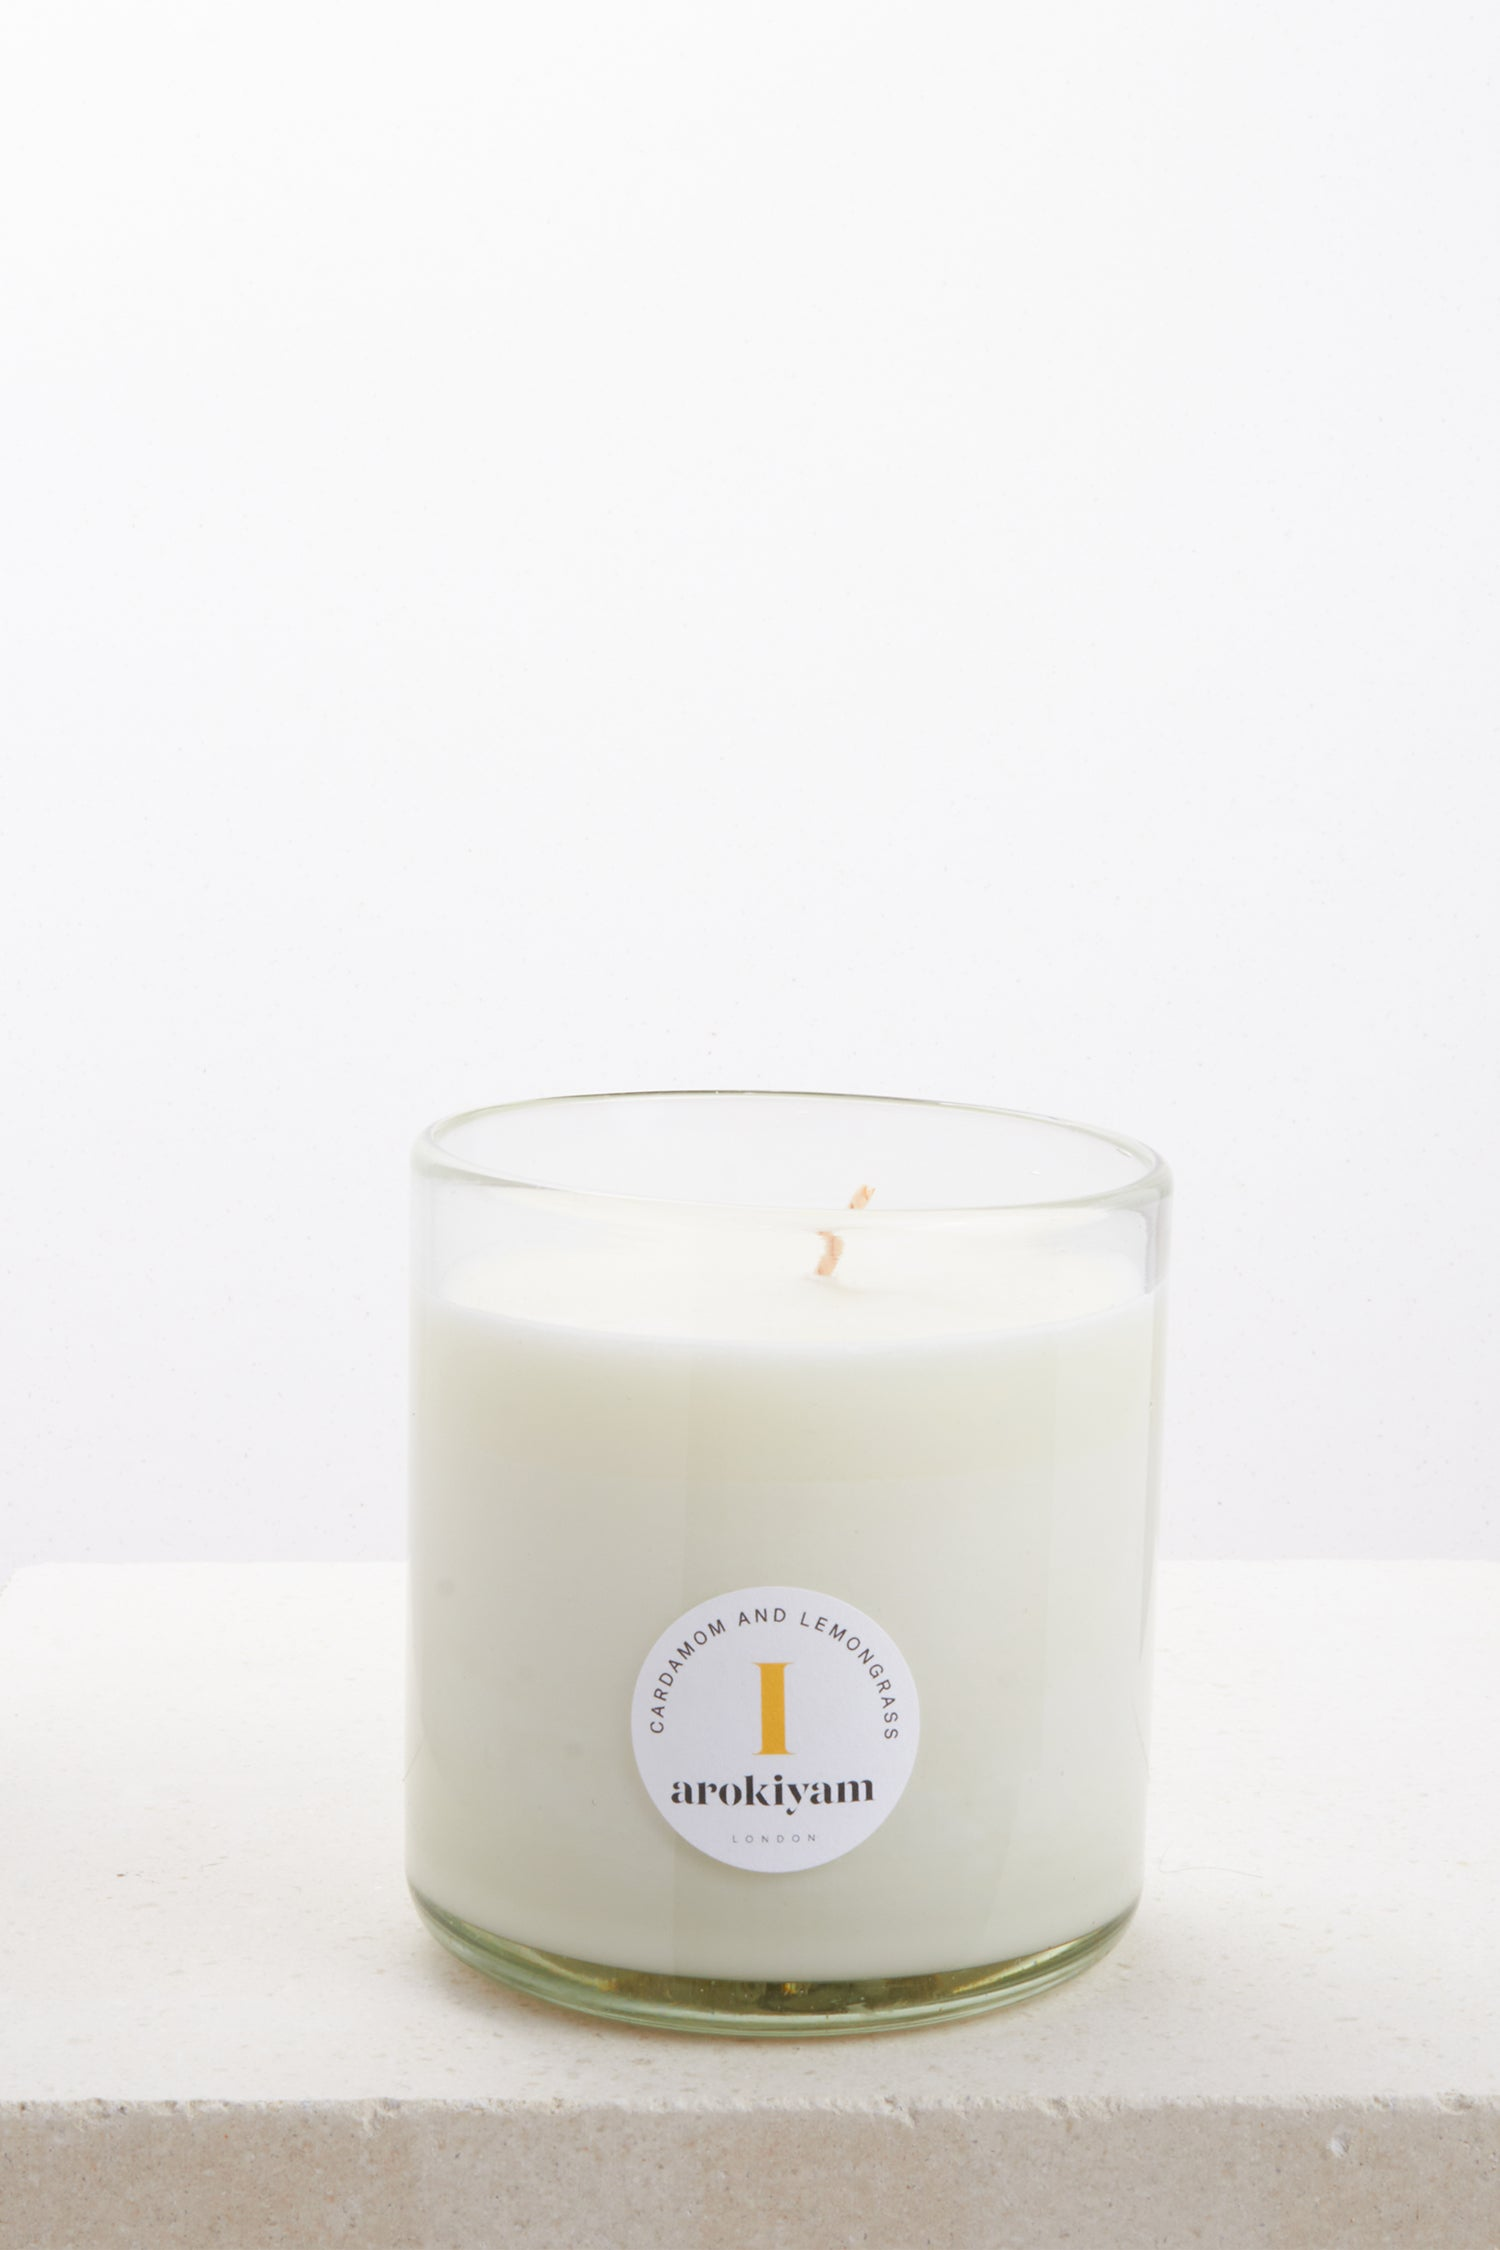 Vegan candle made from a coconut and soy wax and scented with natural cardamom and lemongrass. Made in London.